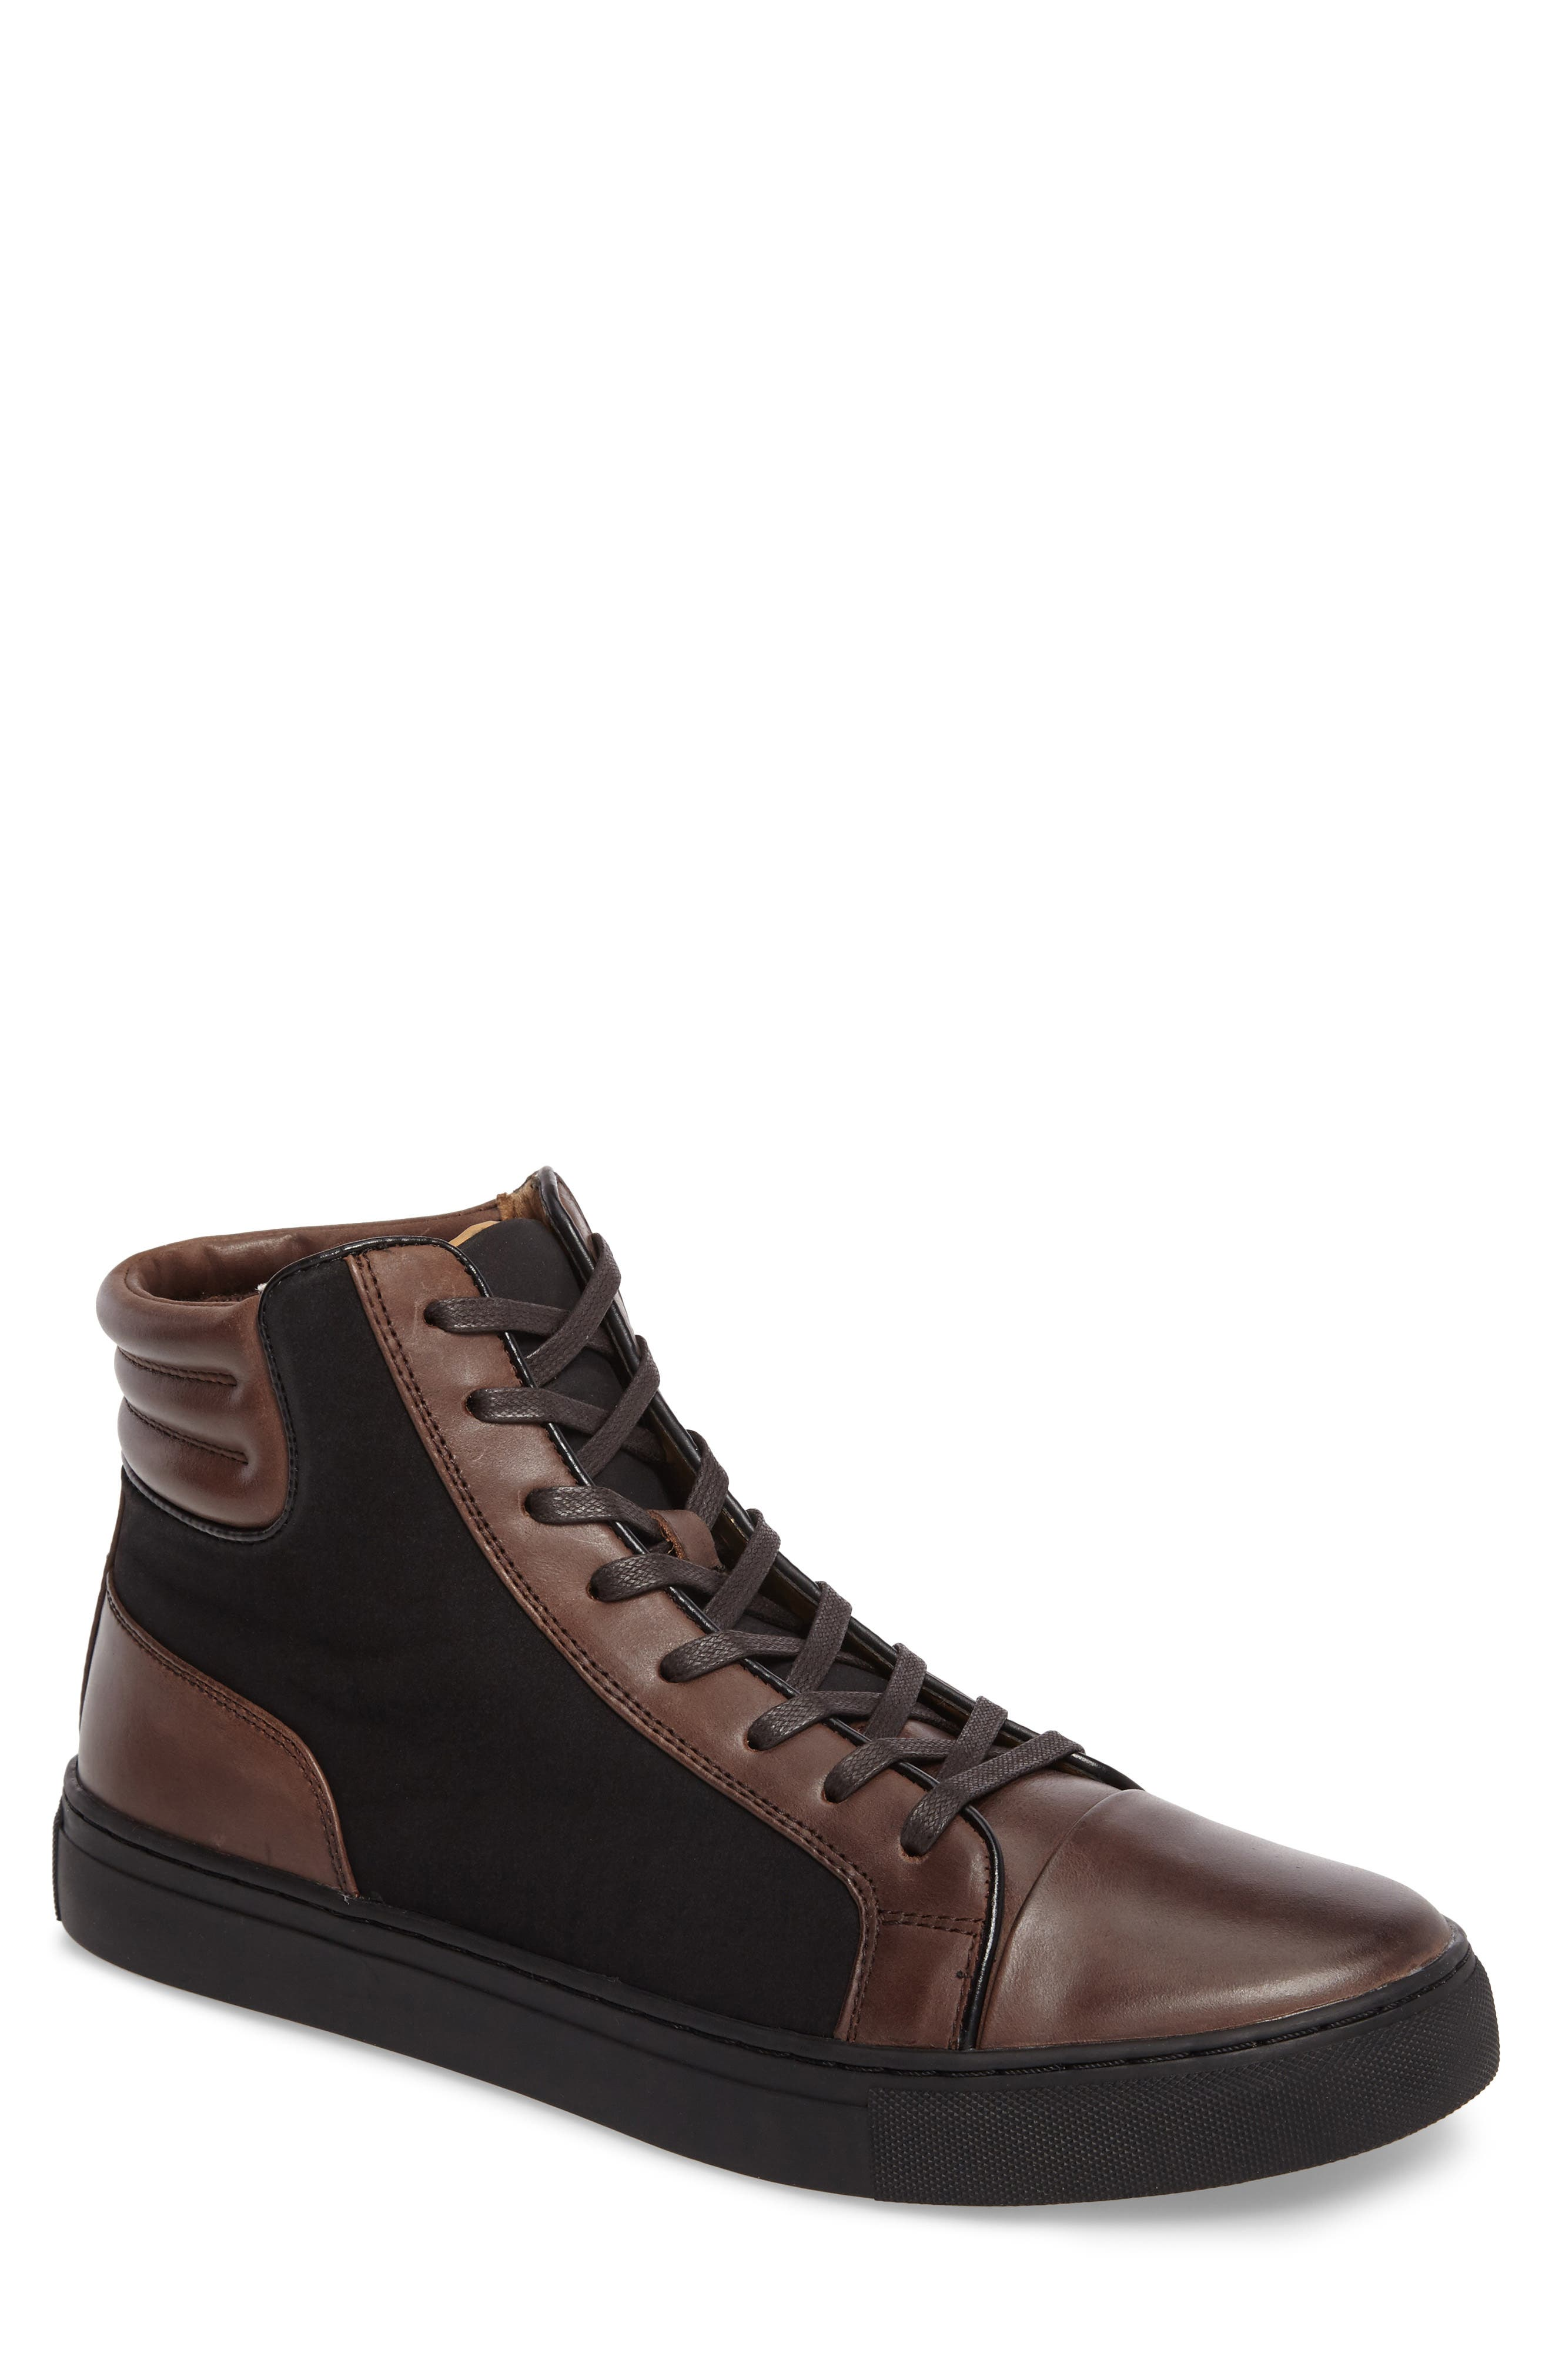 Kenneth Cole Reaction Sneaker,                             Main thumbnail 1, color,                             Brown/ Black